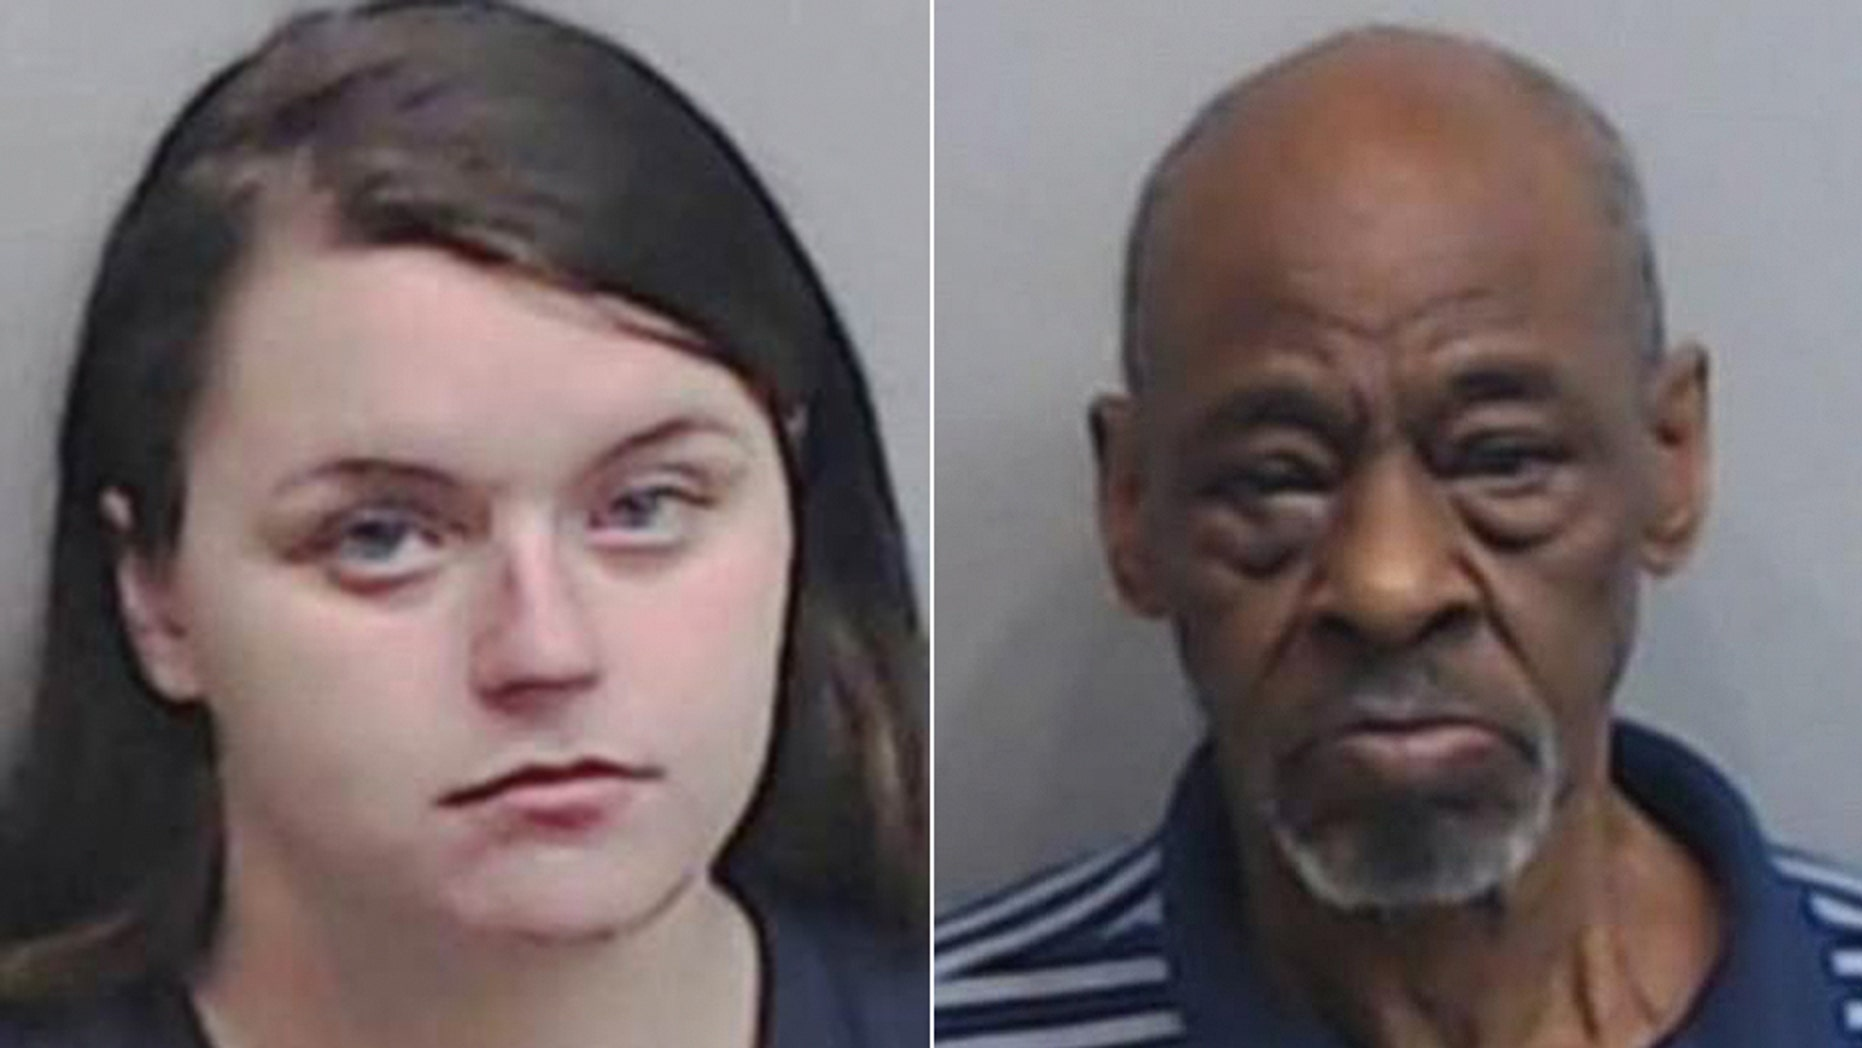 """Morgan Summerlin (left) admitted to bringing her young daughters to the homes of men to be raped in exchange for cash, including that of Richard """"Pop"""" Office (right)."""